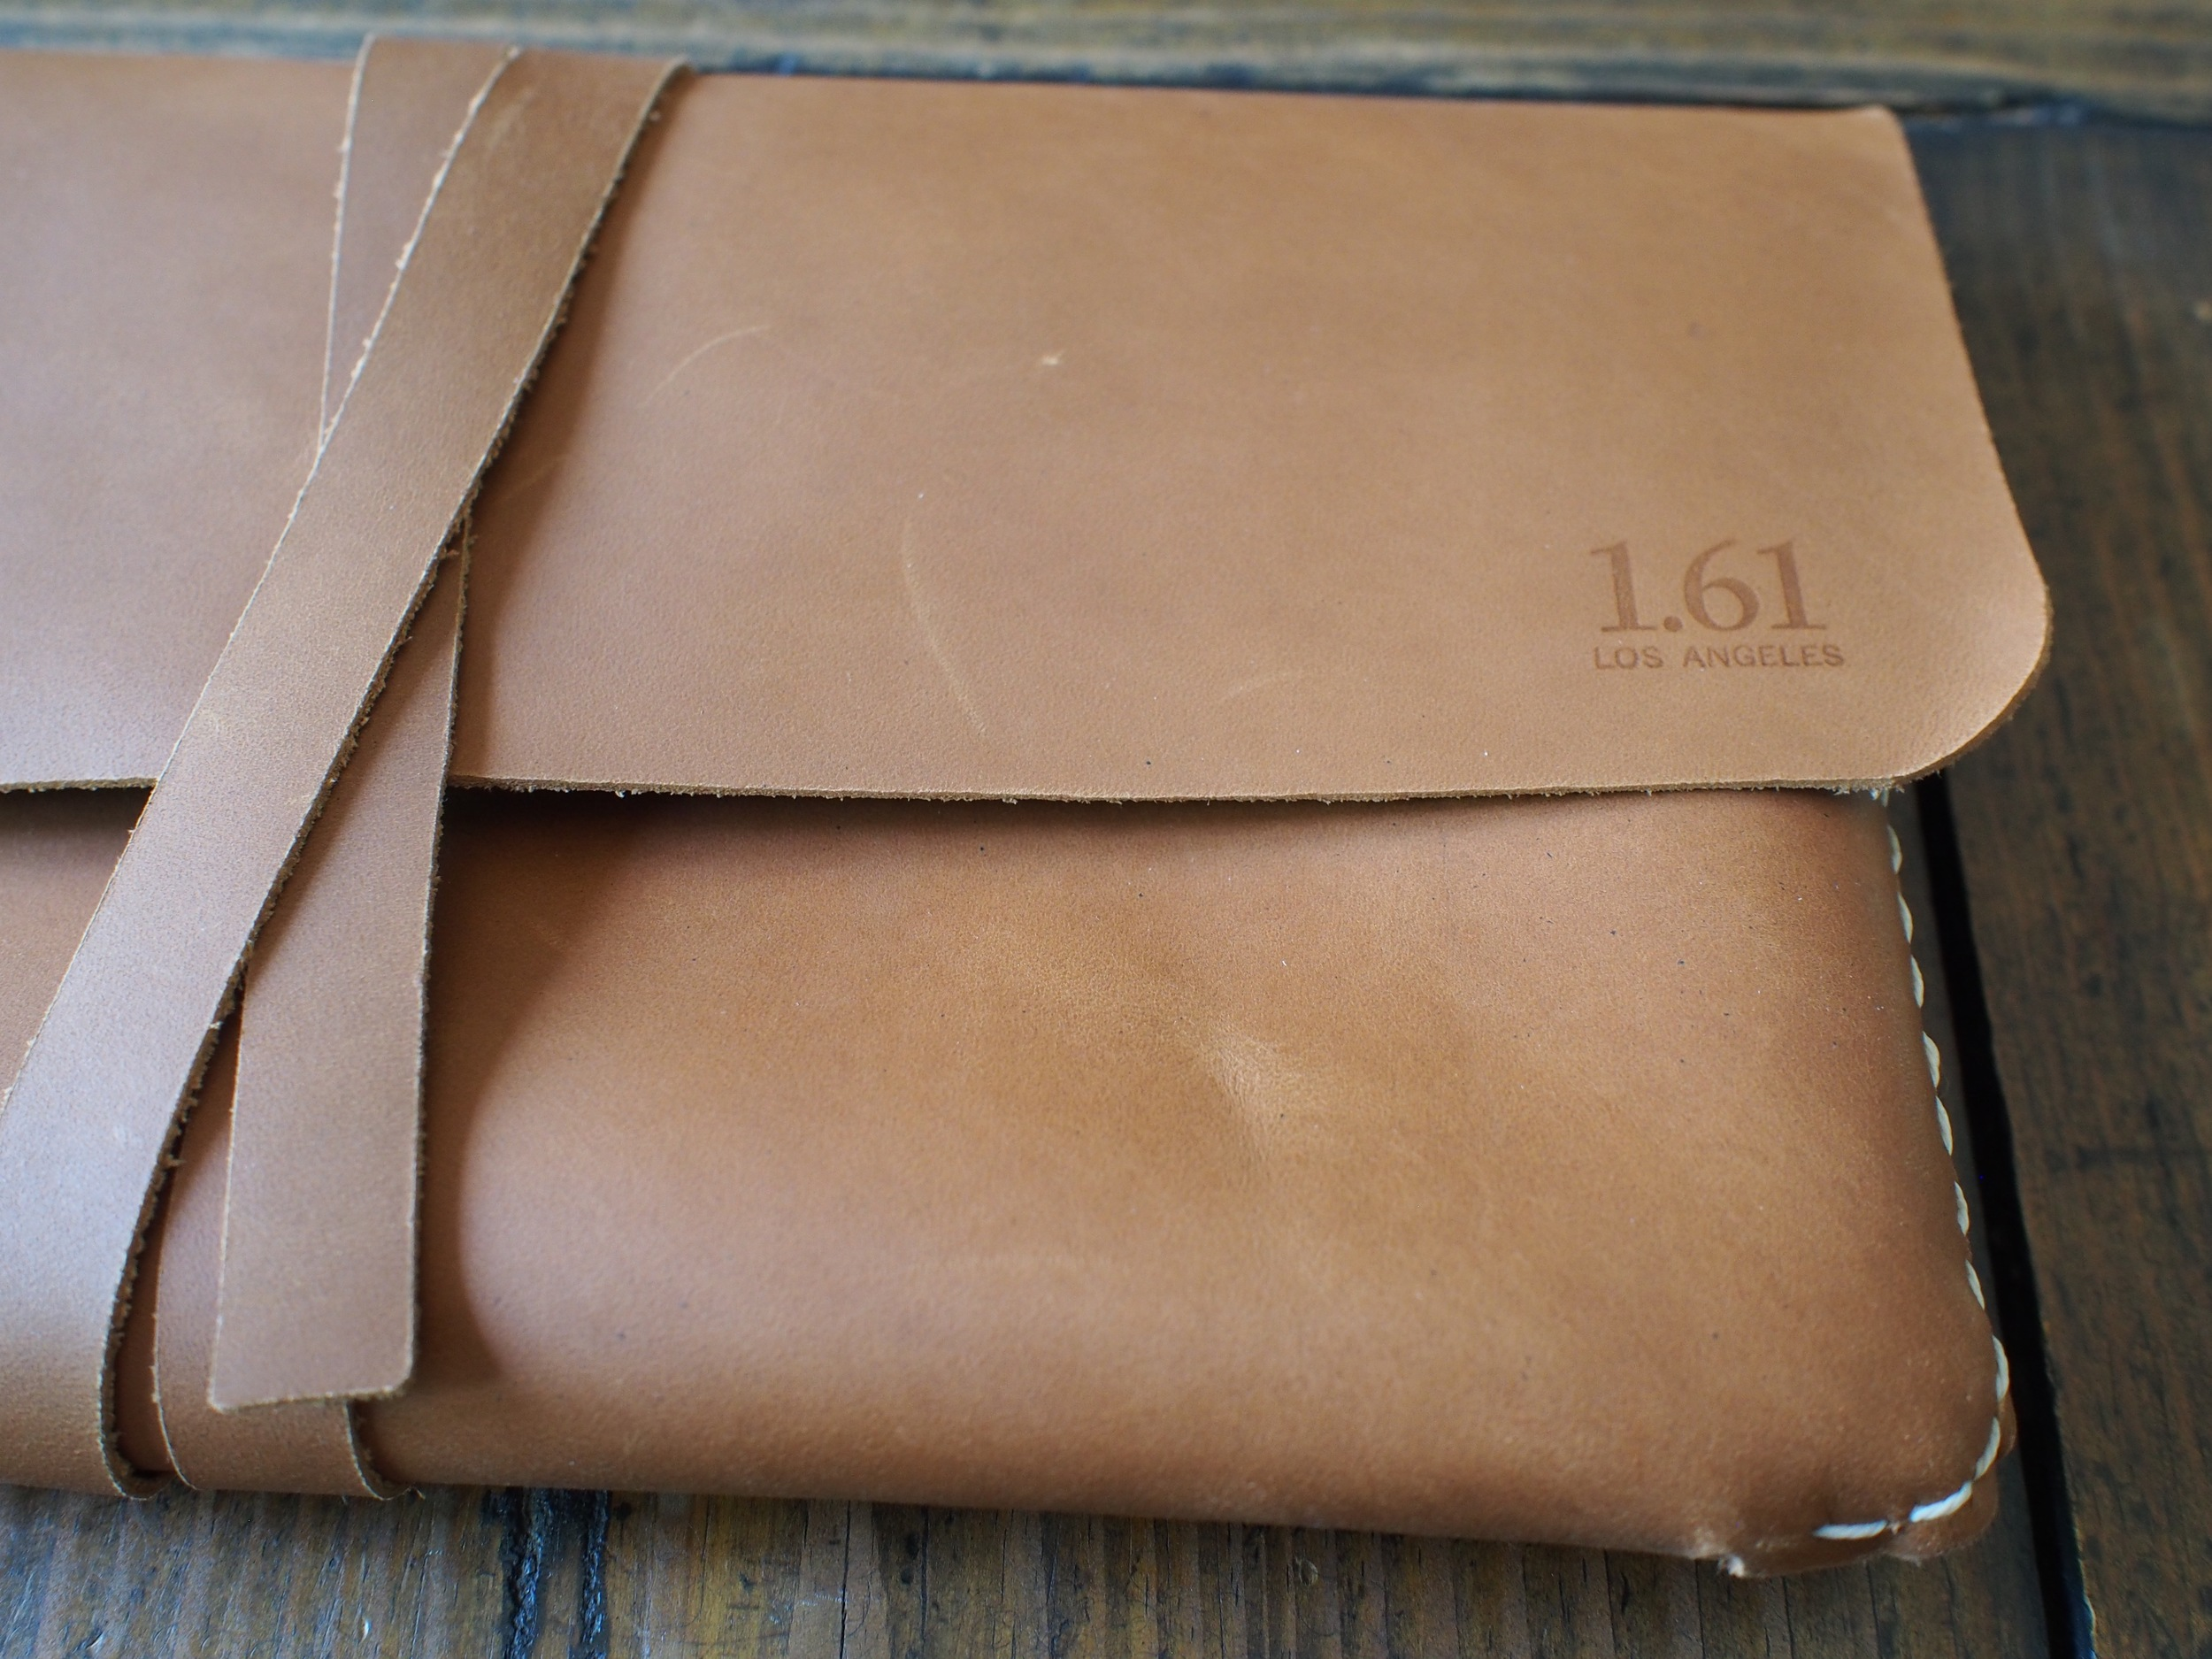 Baum-Kuchen x 1.61 Soft Goods Dimensional Leather Pouch